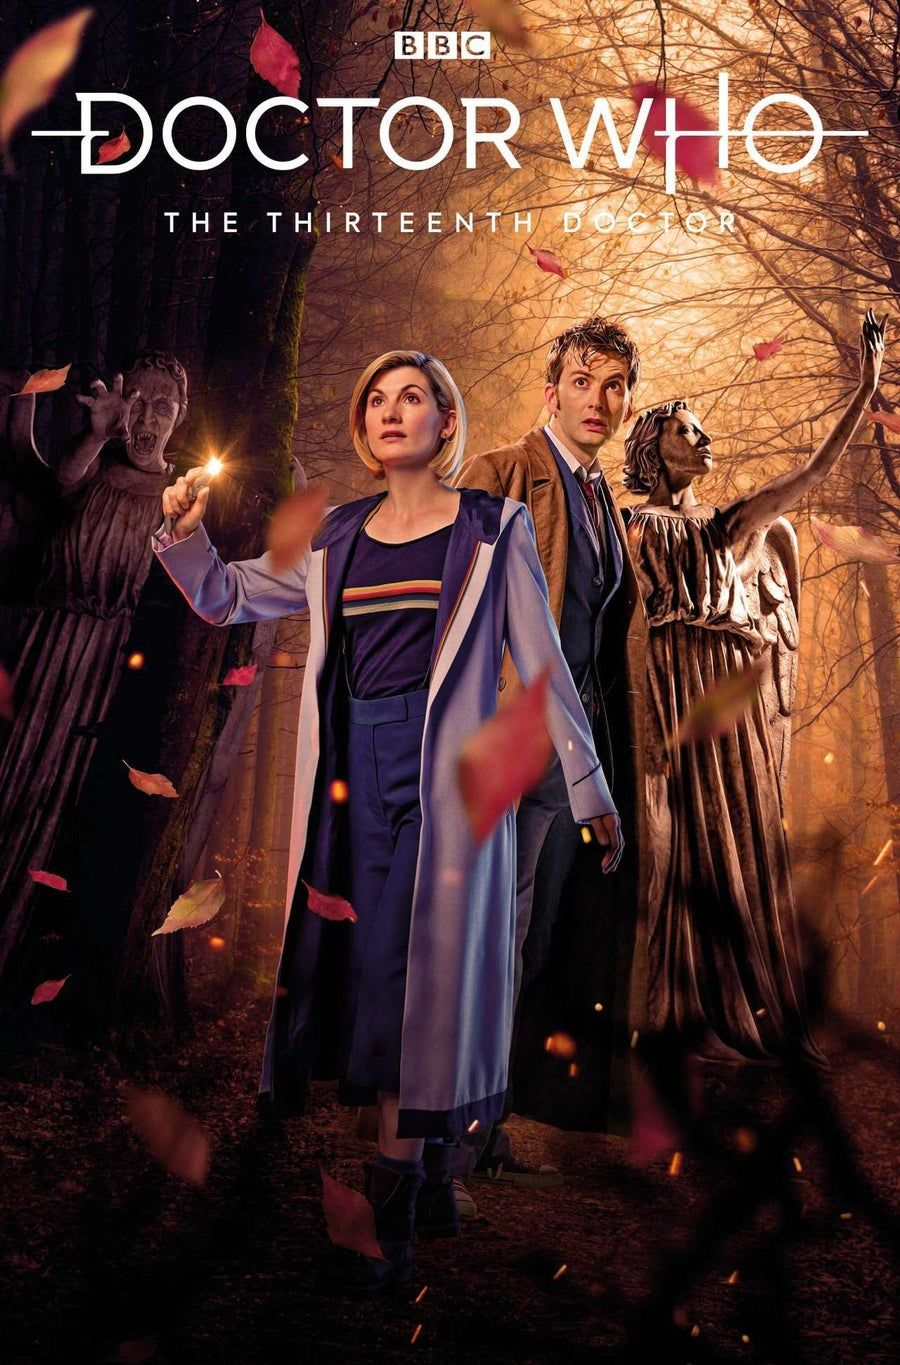 Doctor Who The Thirteenth Doctor Season Two